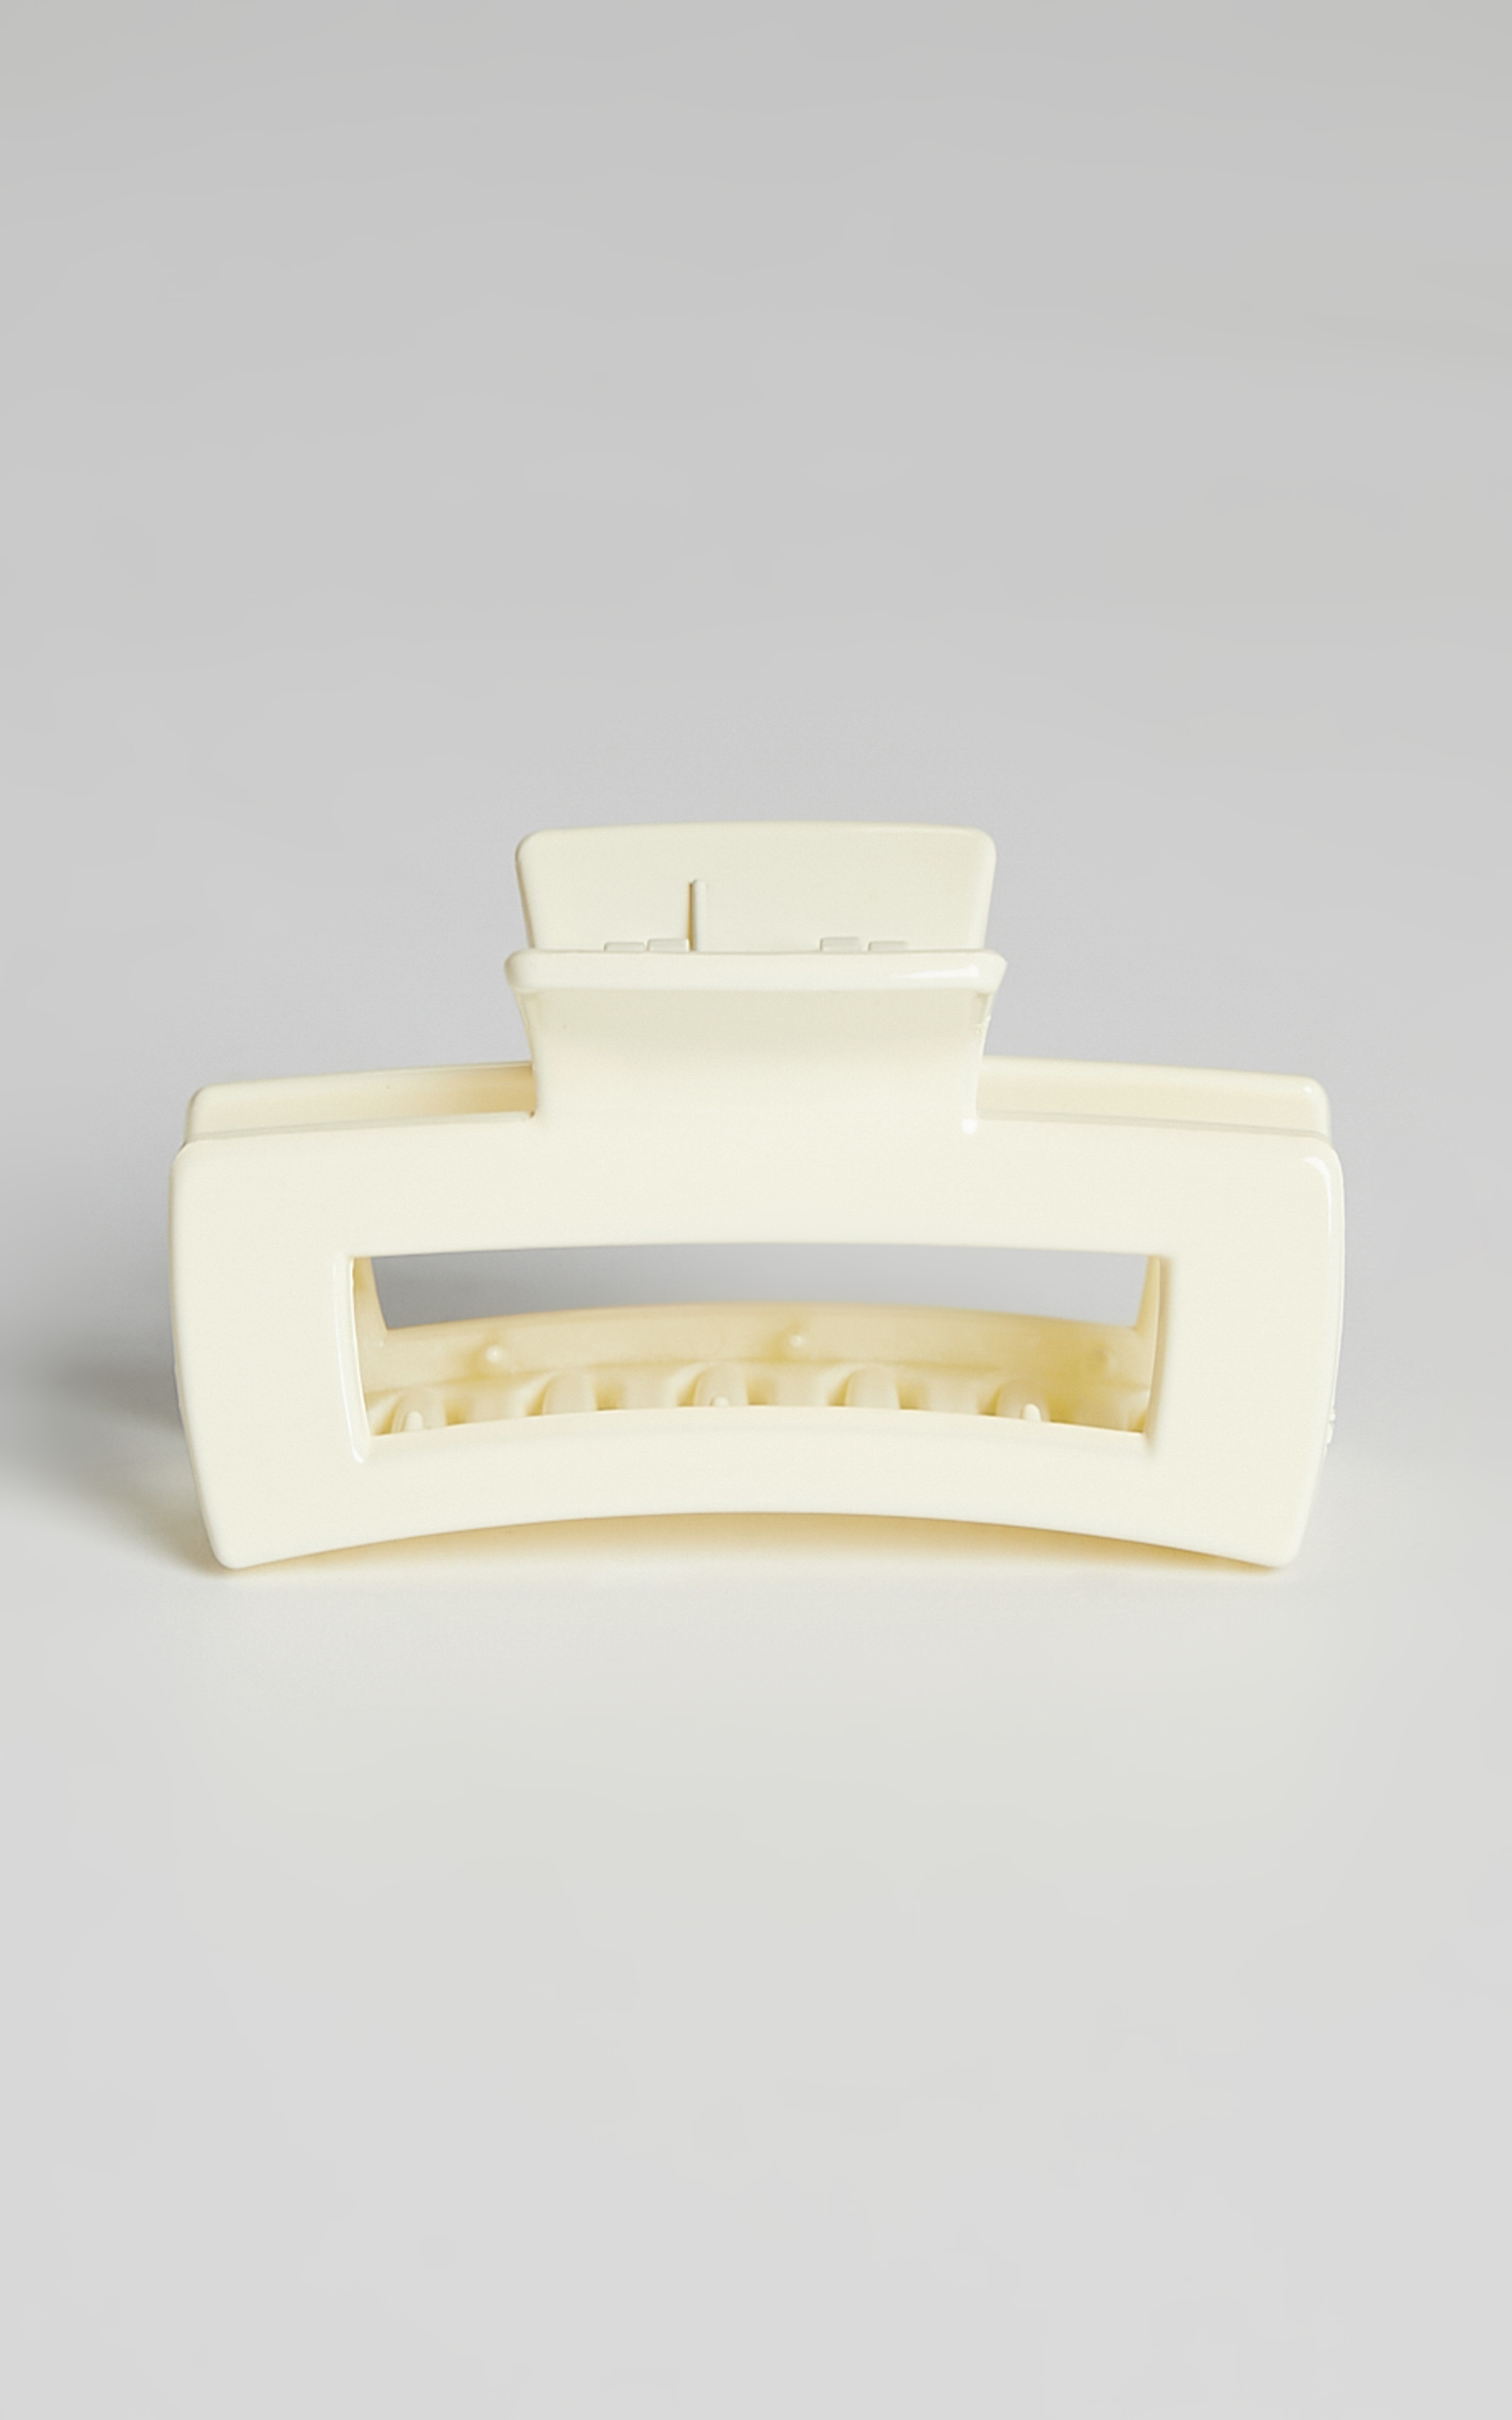 Torres Hair Clip in Cream - NoSize, CRE3, hi-res image number null